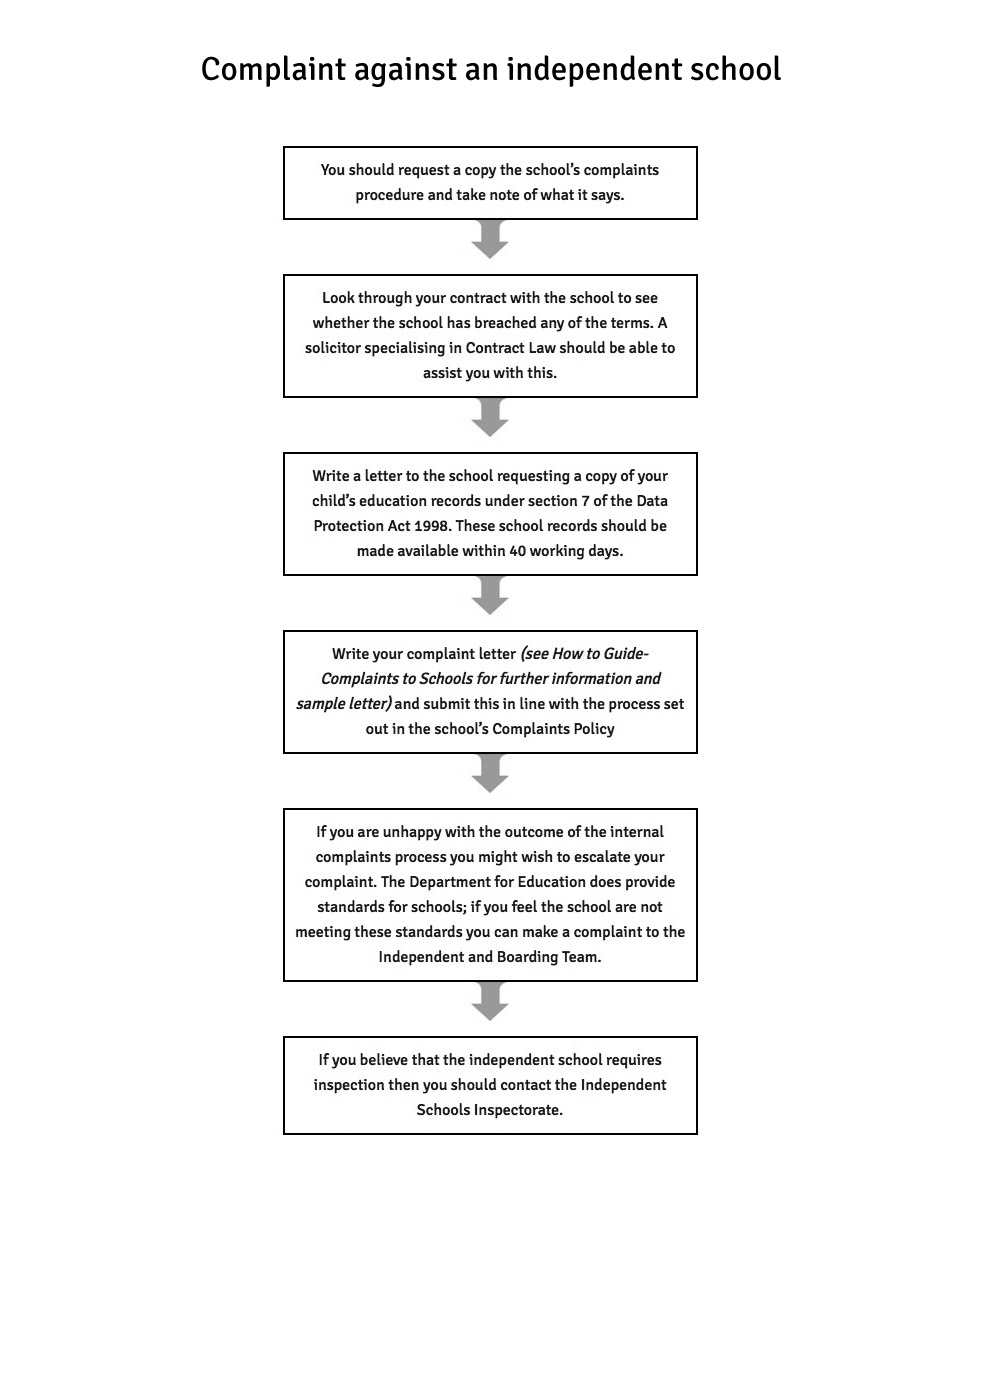 Complaints to independent schools complaint against an independent school flowchart spiritdancerdesigns